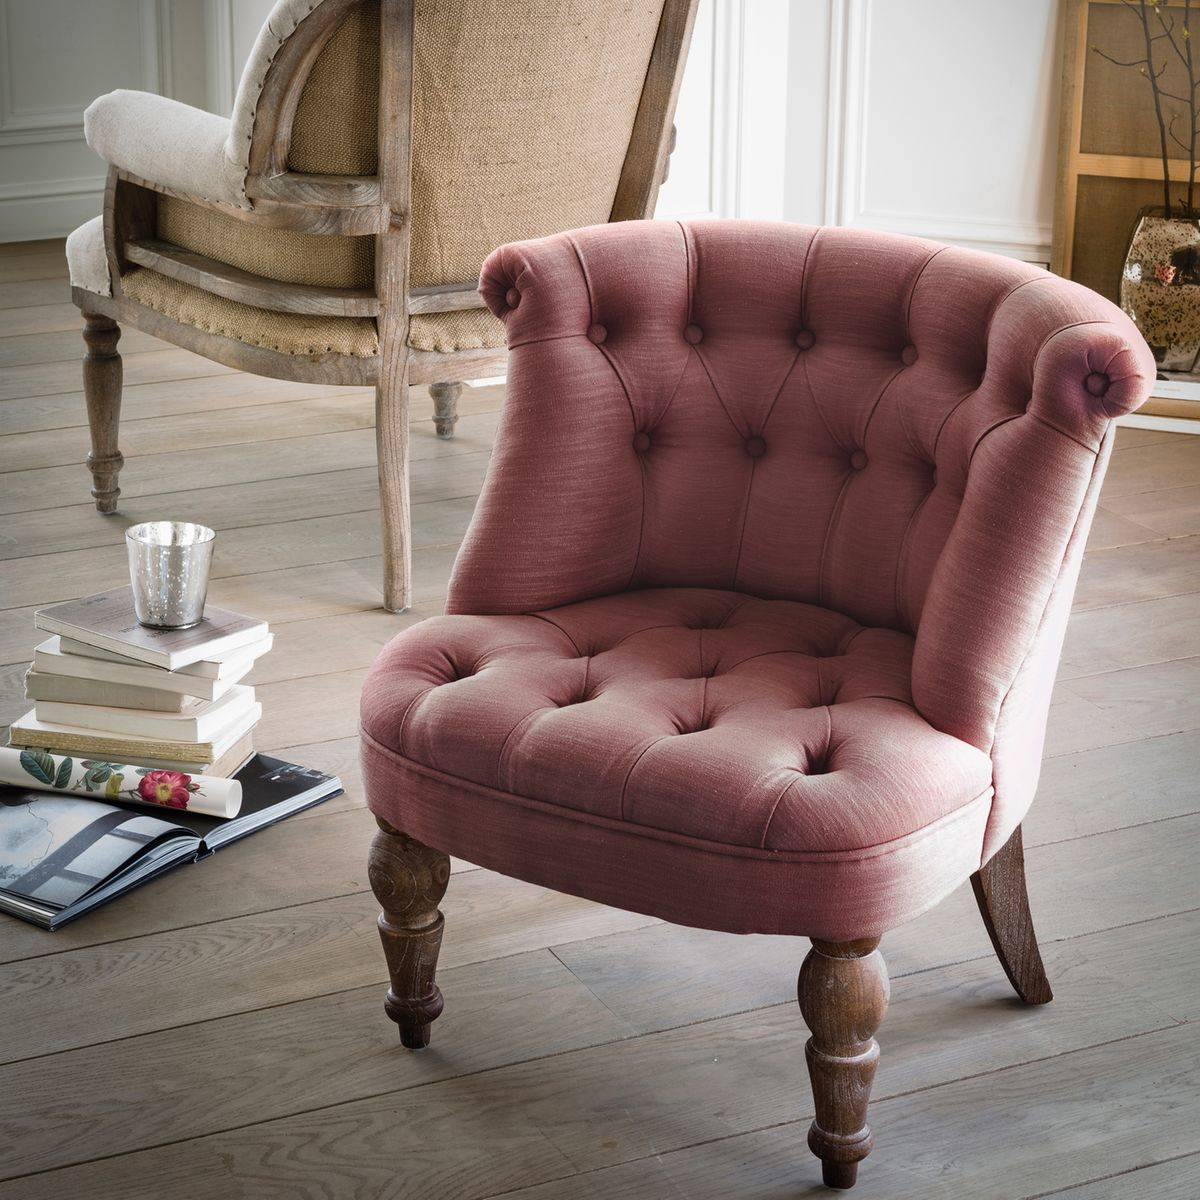 Fauteuil crapaud laredoute